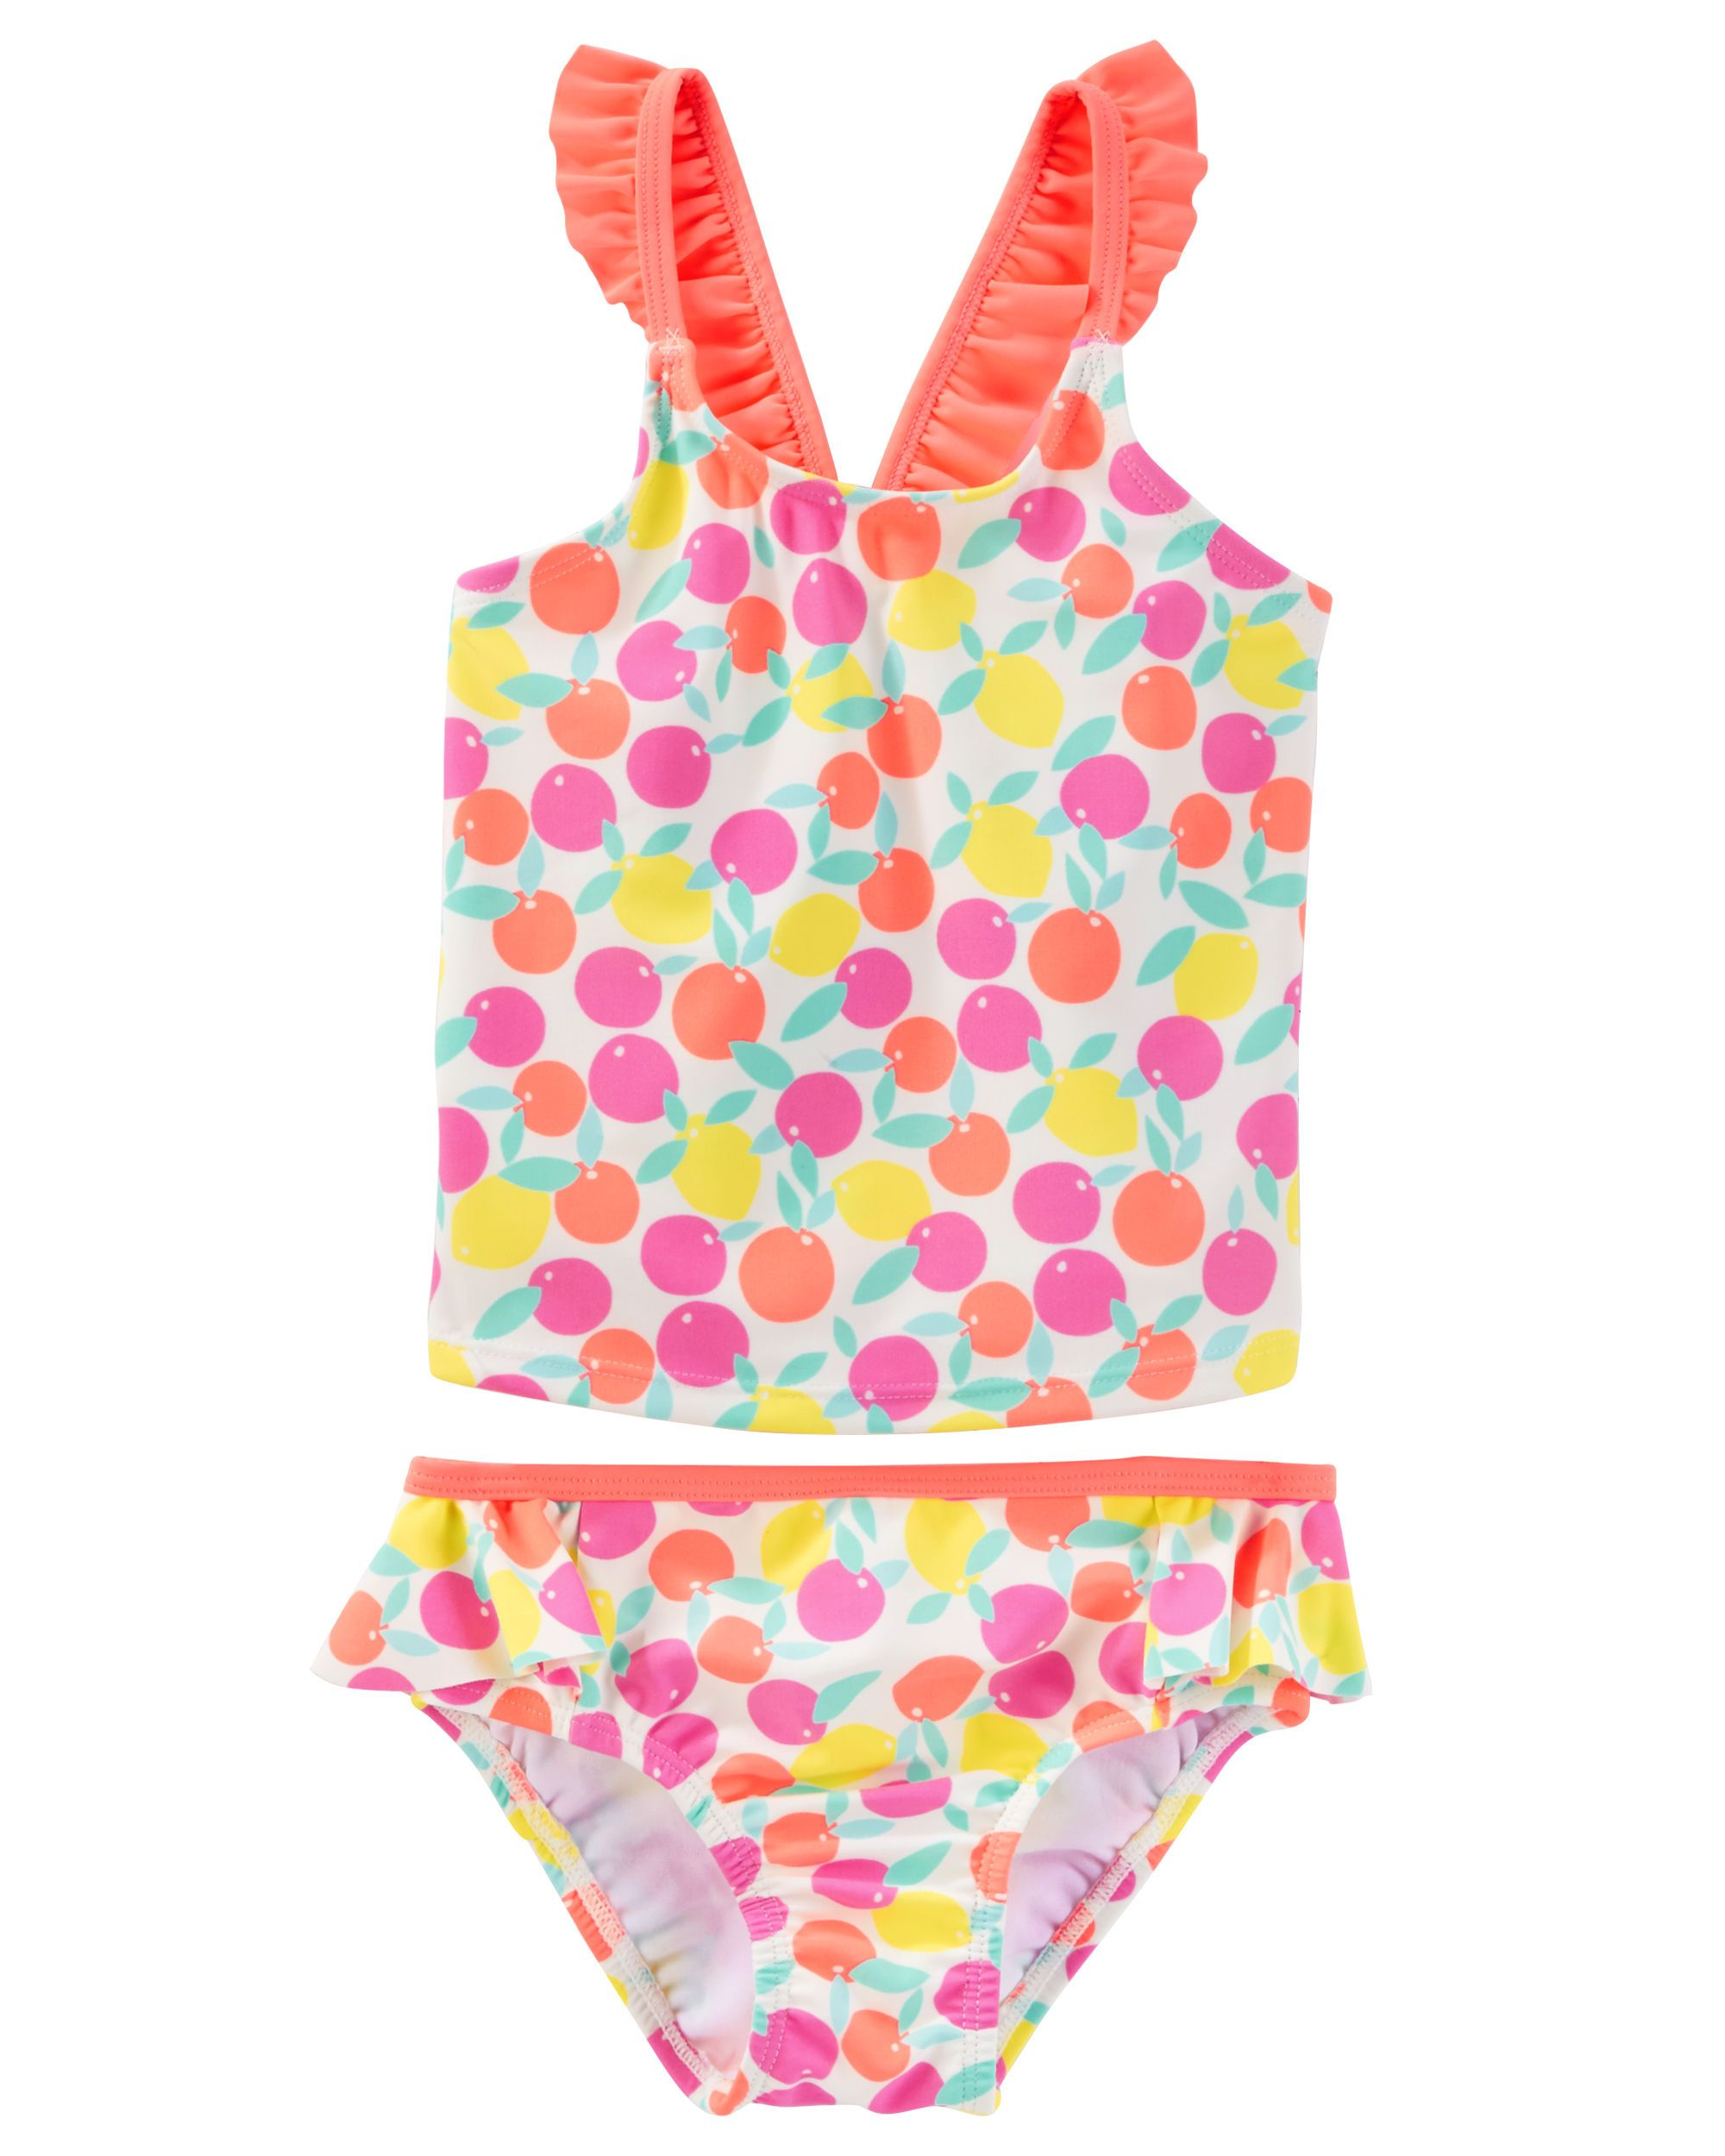 OshKosh BGosh Osh Kosh Bgosh Big Girls Two-Piece Printed Tankini Swimsuit Set